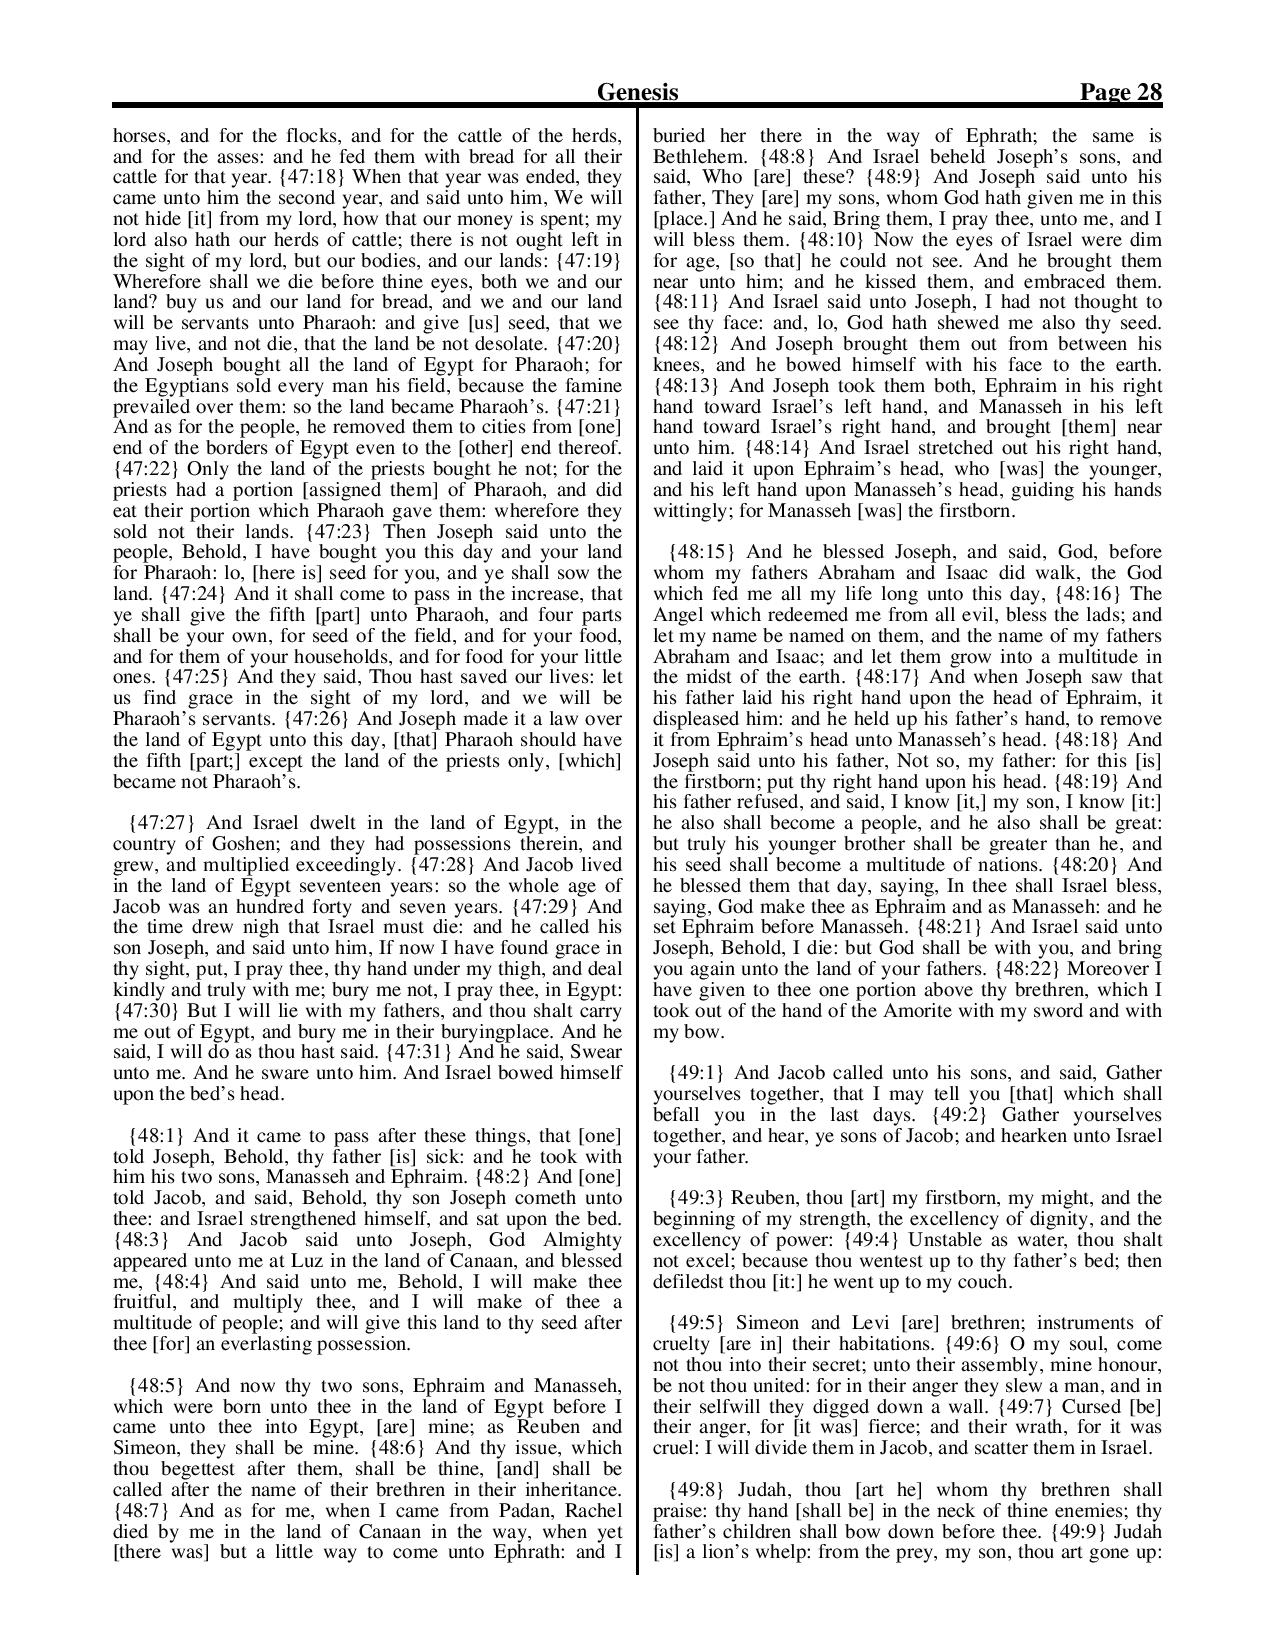 King-James-Bible-KJV-Bible-PDF-page-049